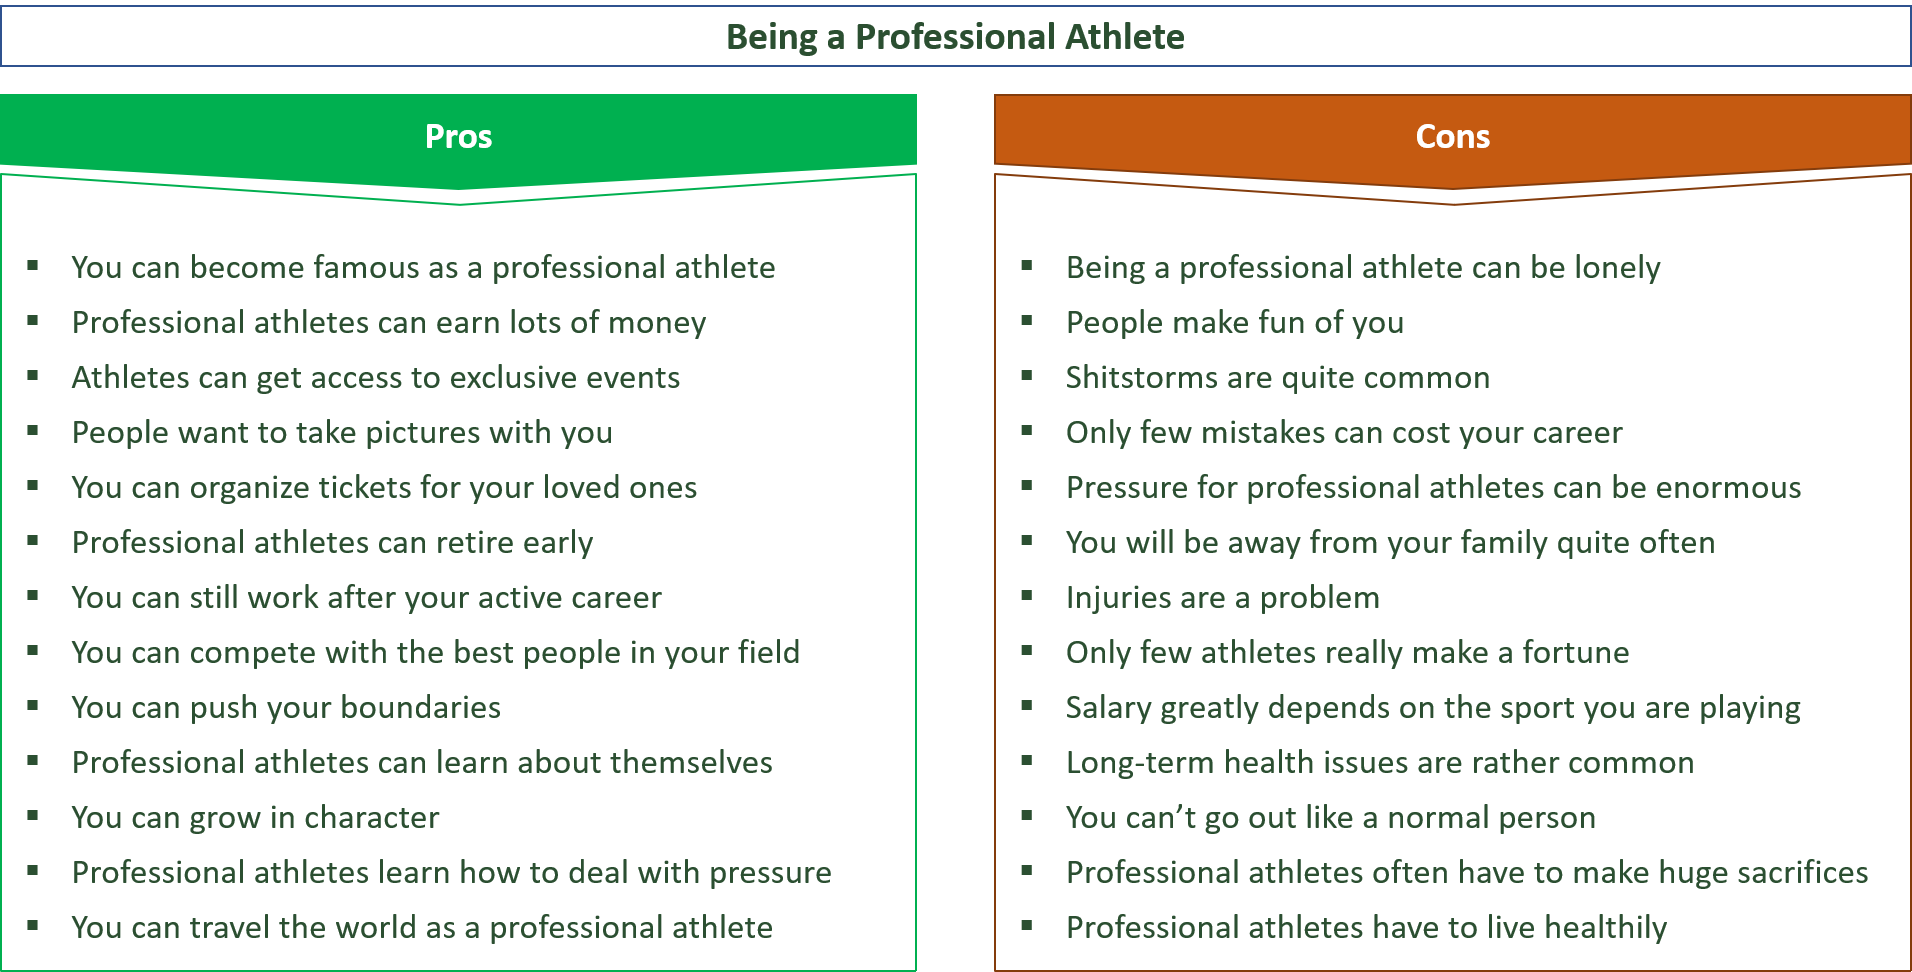 advantages and disadvantages of being a professional athlete